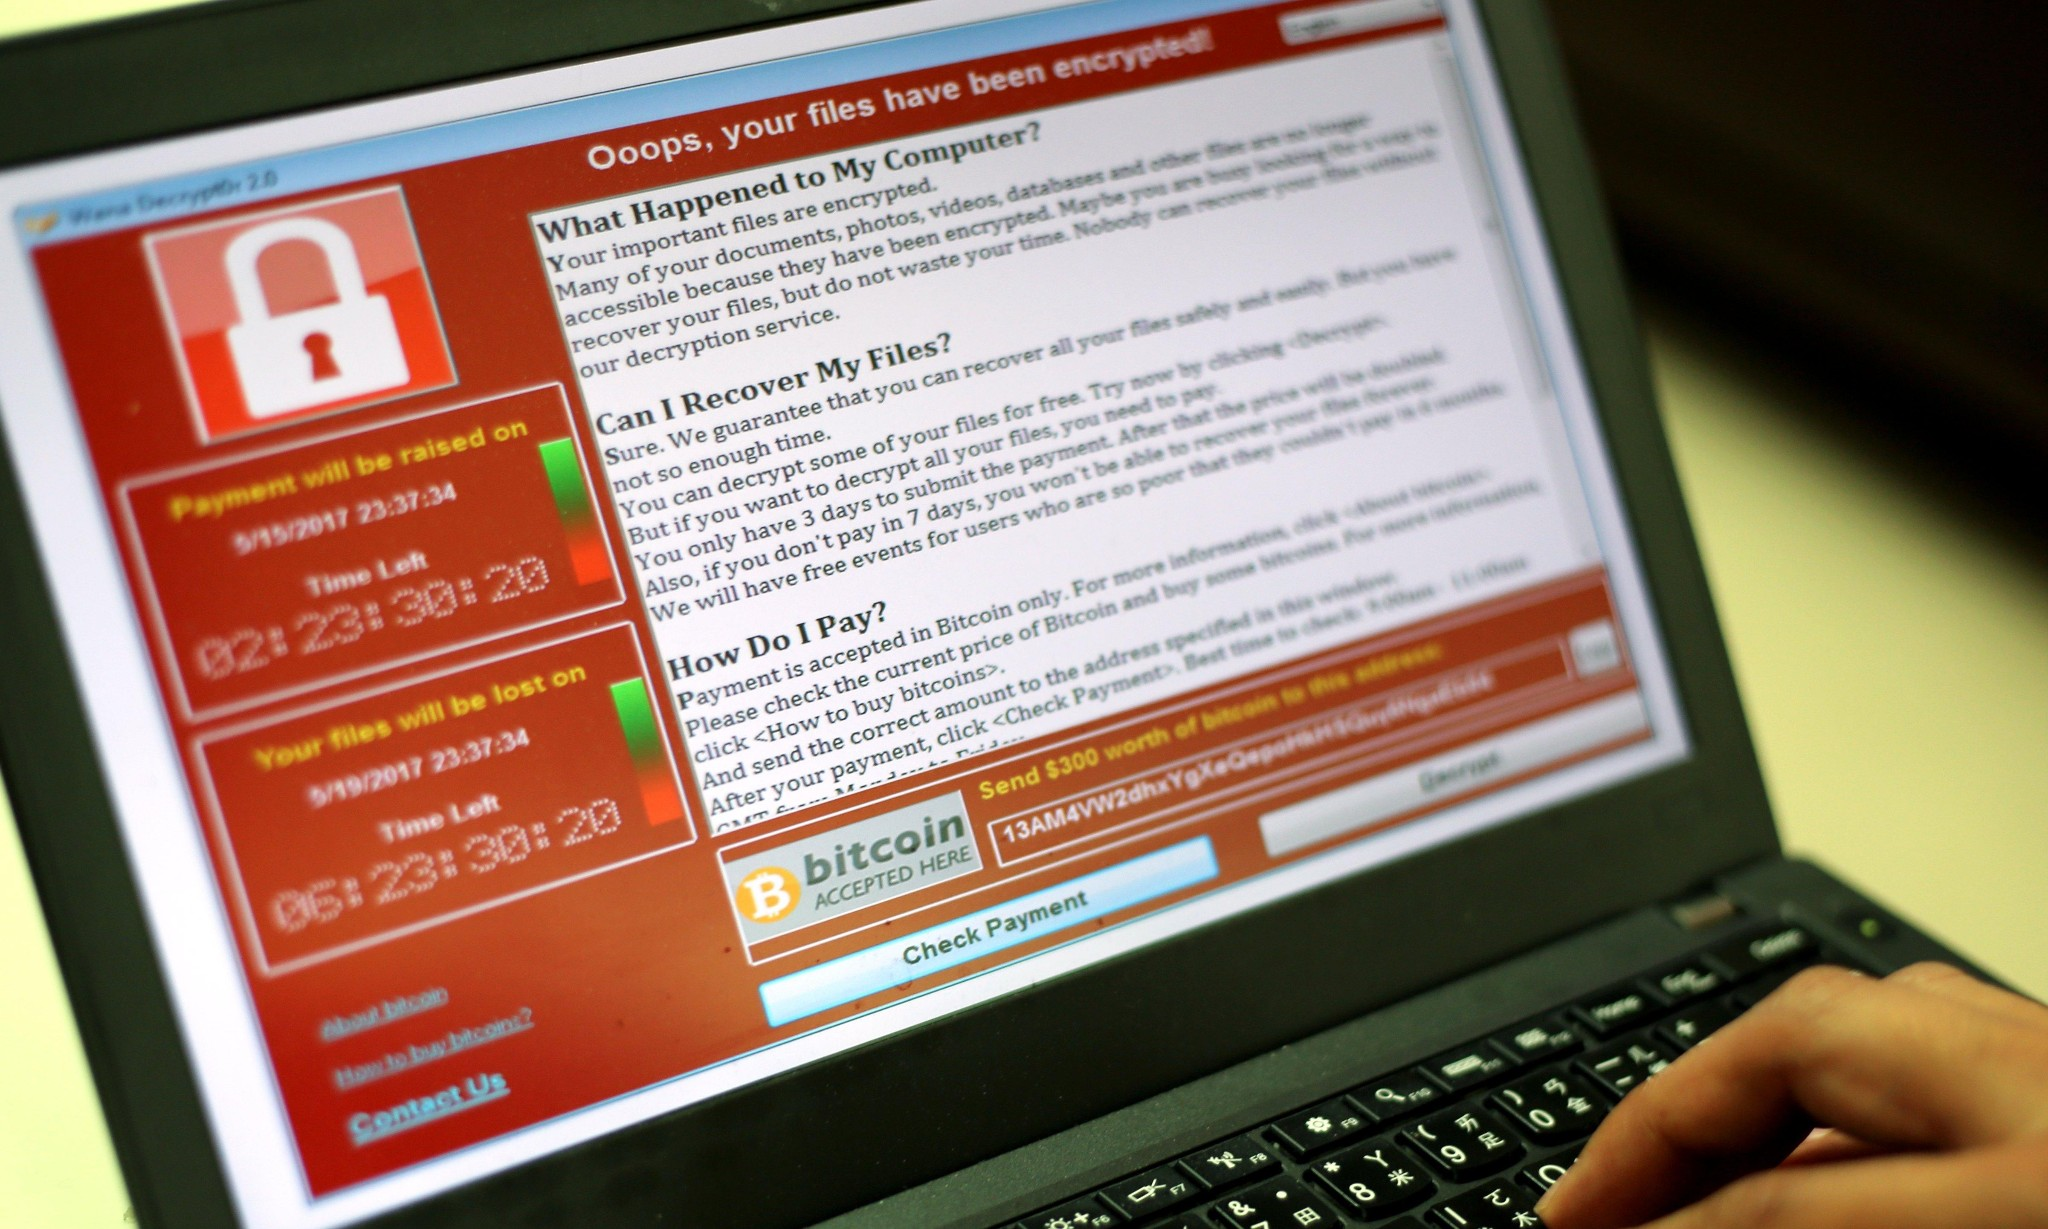 WannaCry cyberattack: US says it has evidence North Korea was 'directly responsible'